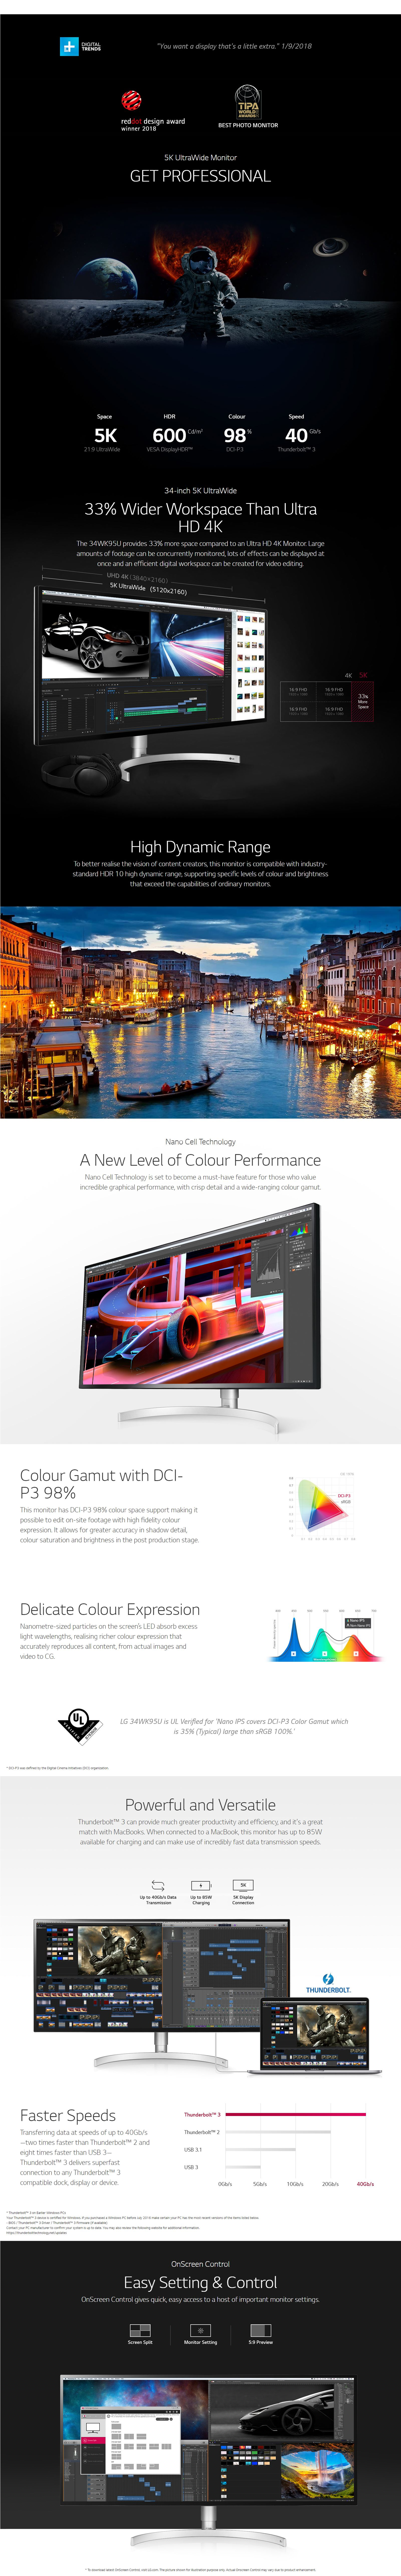 Lg Ultrawide Dual Controller Download